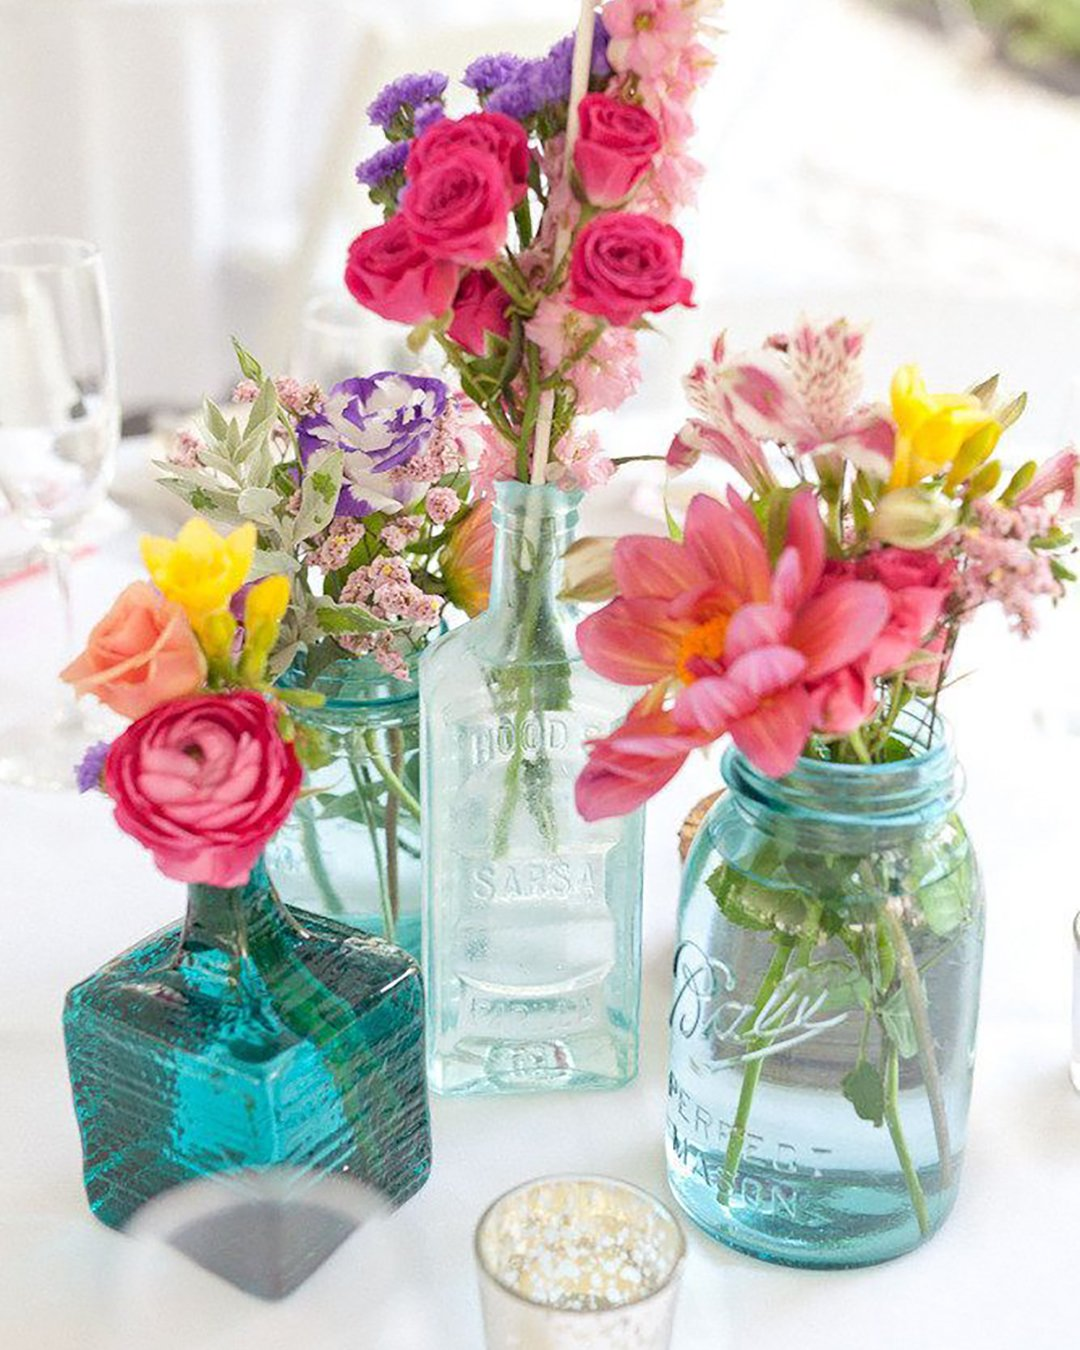 cheap boho decor flowers in color jars carolinefrostphotography